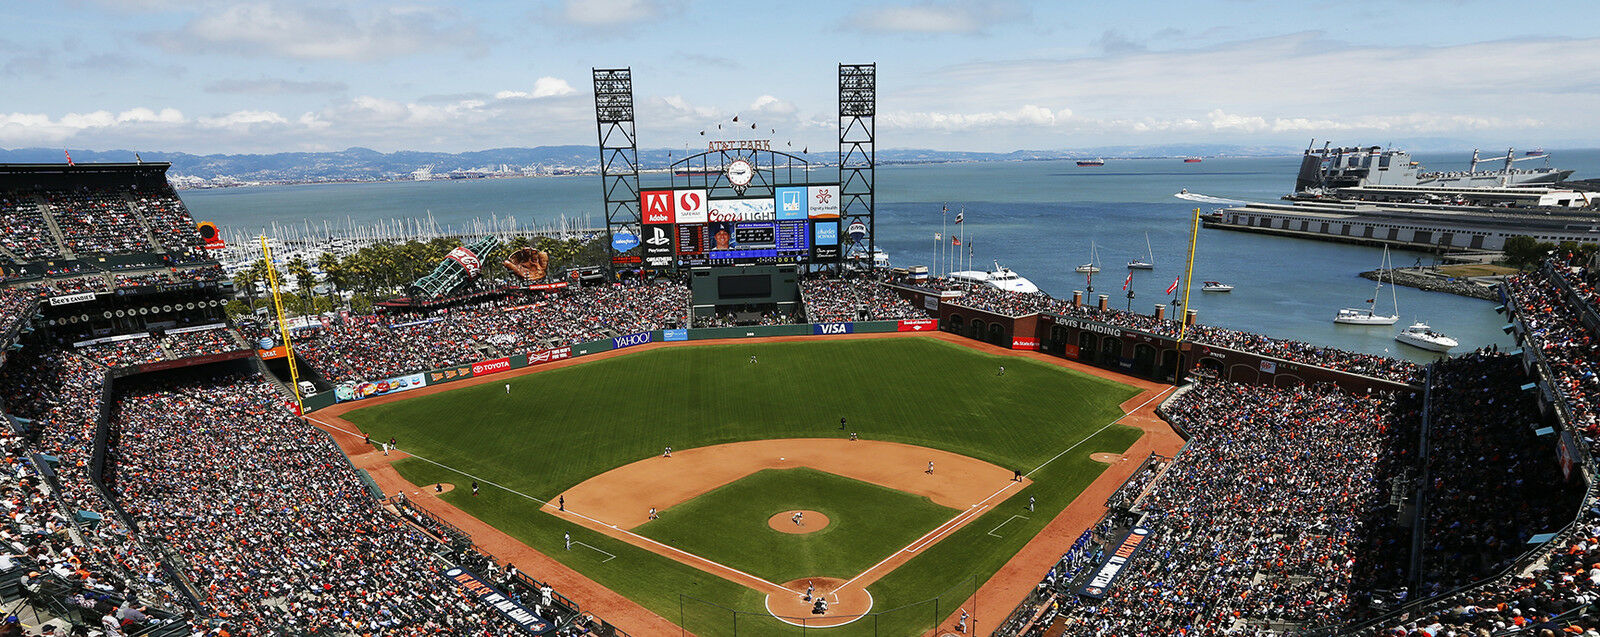 Atlanta Braves at San Francisco Giants Tickets (Fireworks Night)